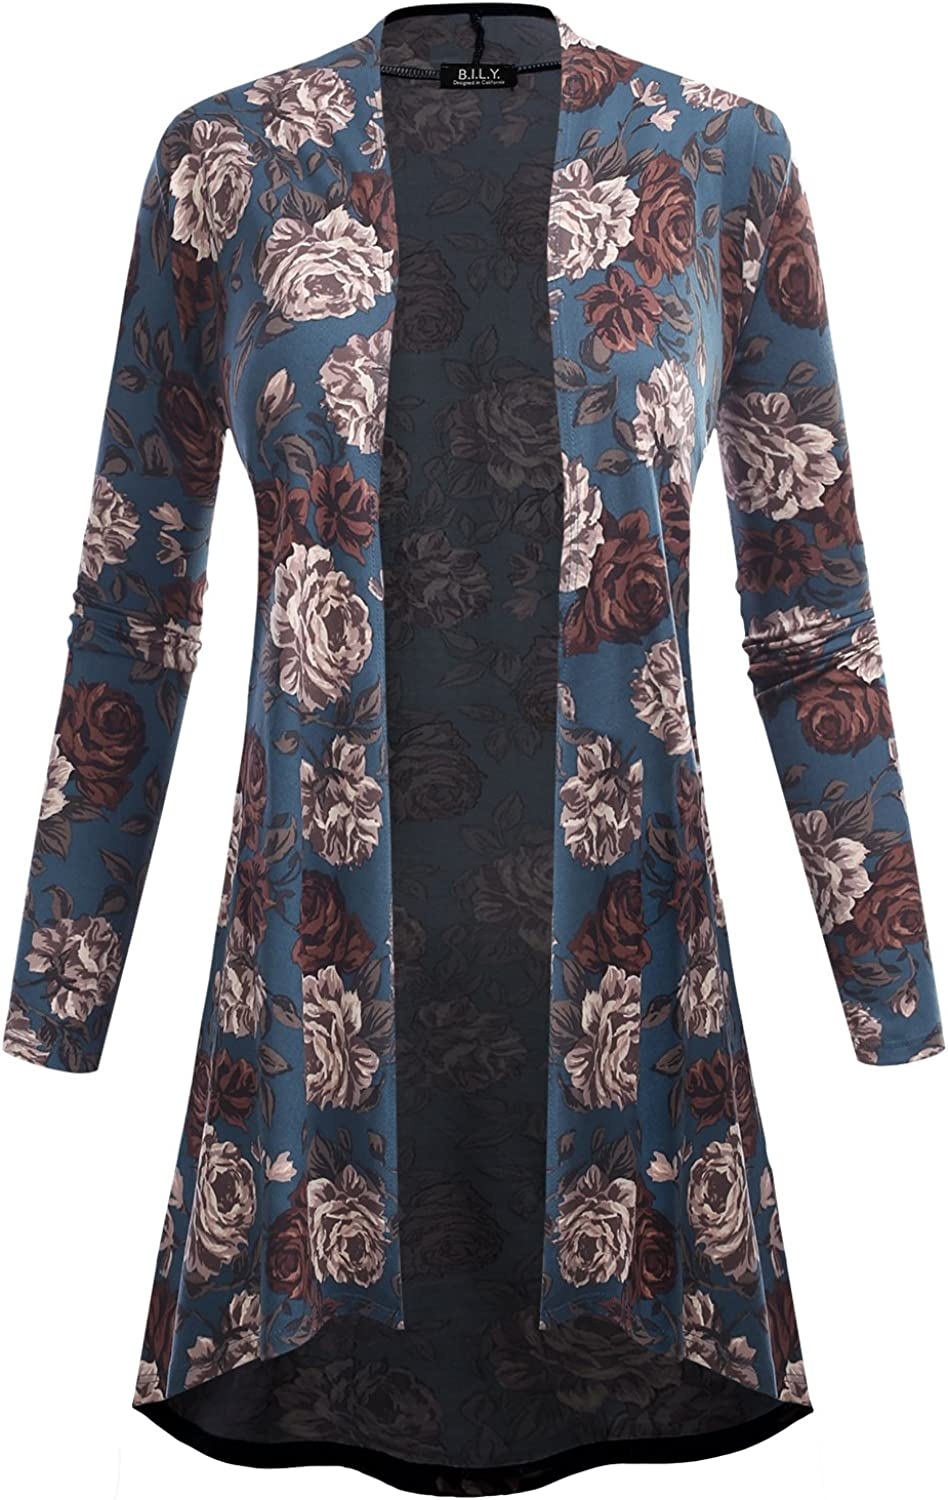 BH B.I.L.Y USA Women's Open Front HighLow Long Sleeve Floral Print Cardigan 61039 Teal Small